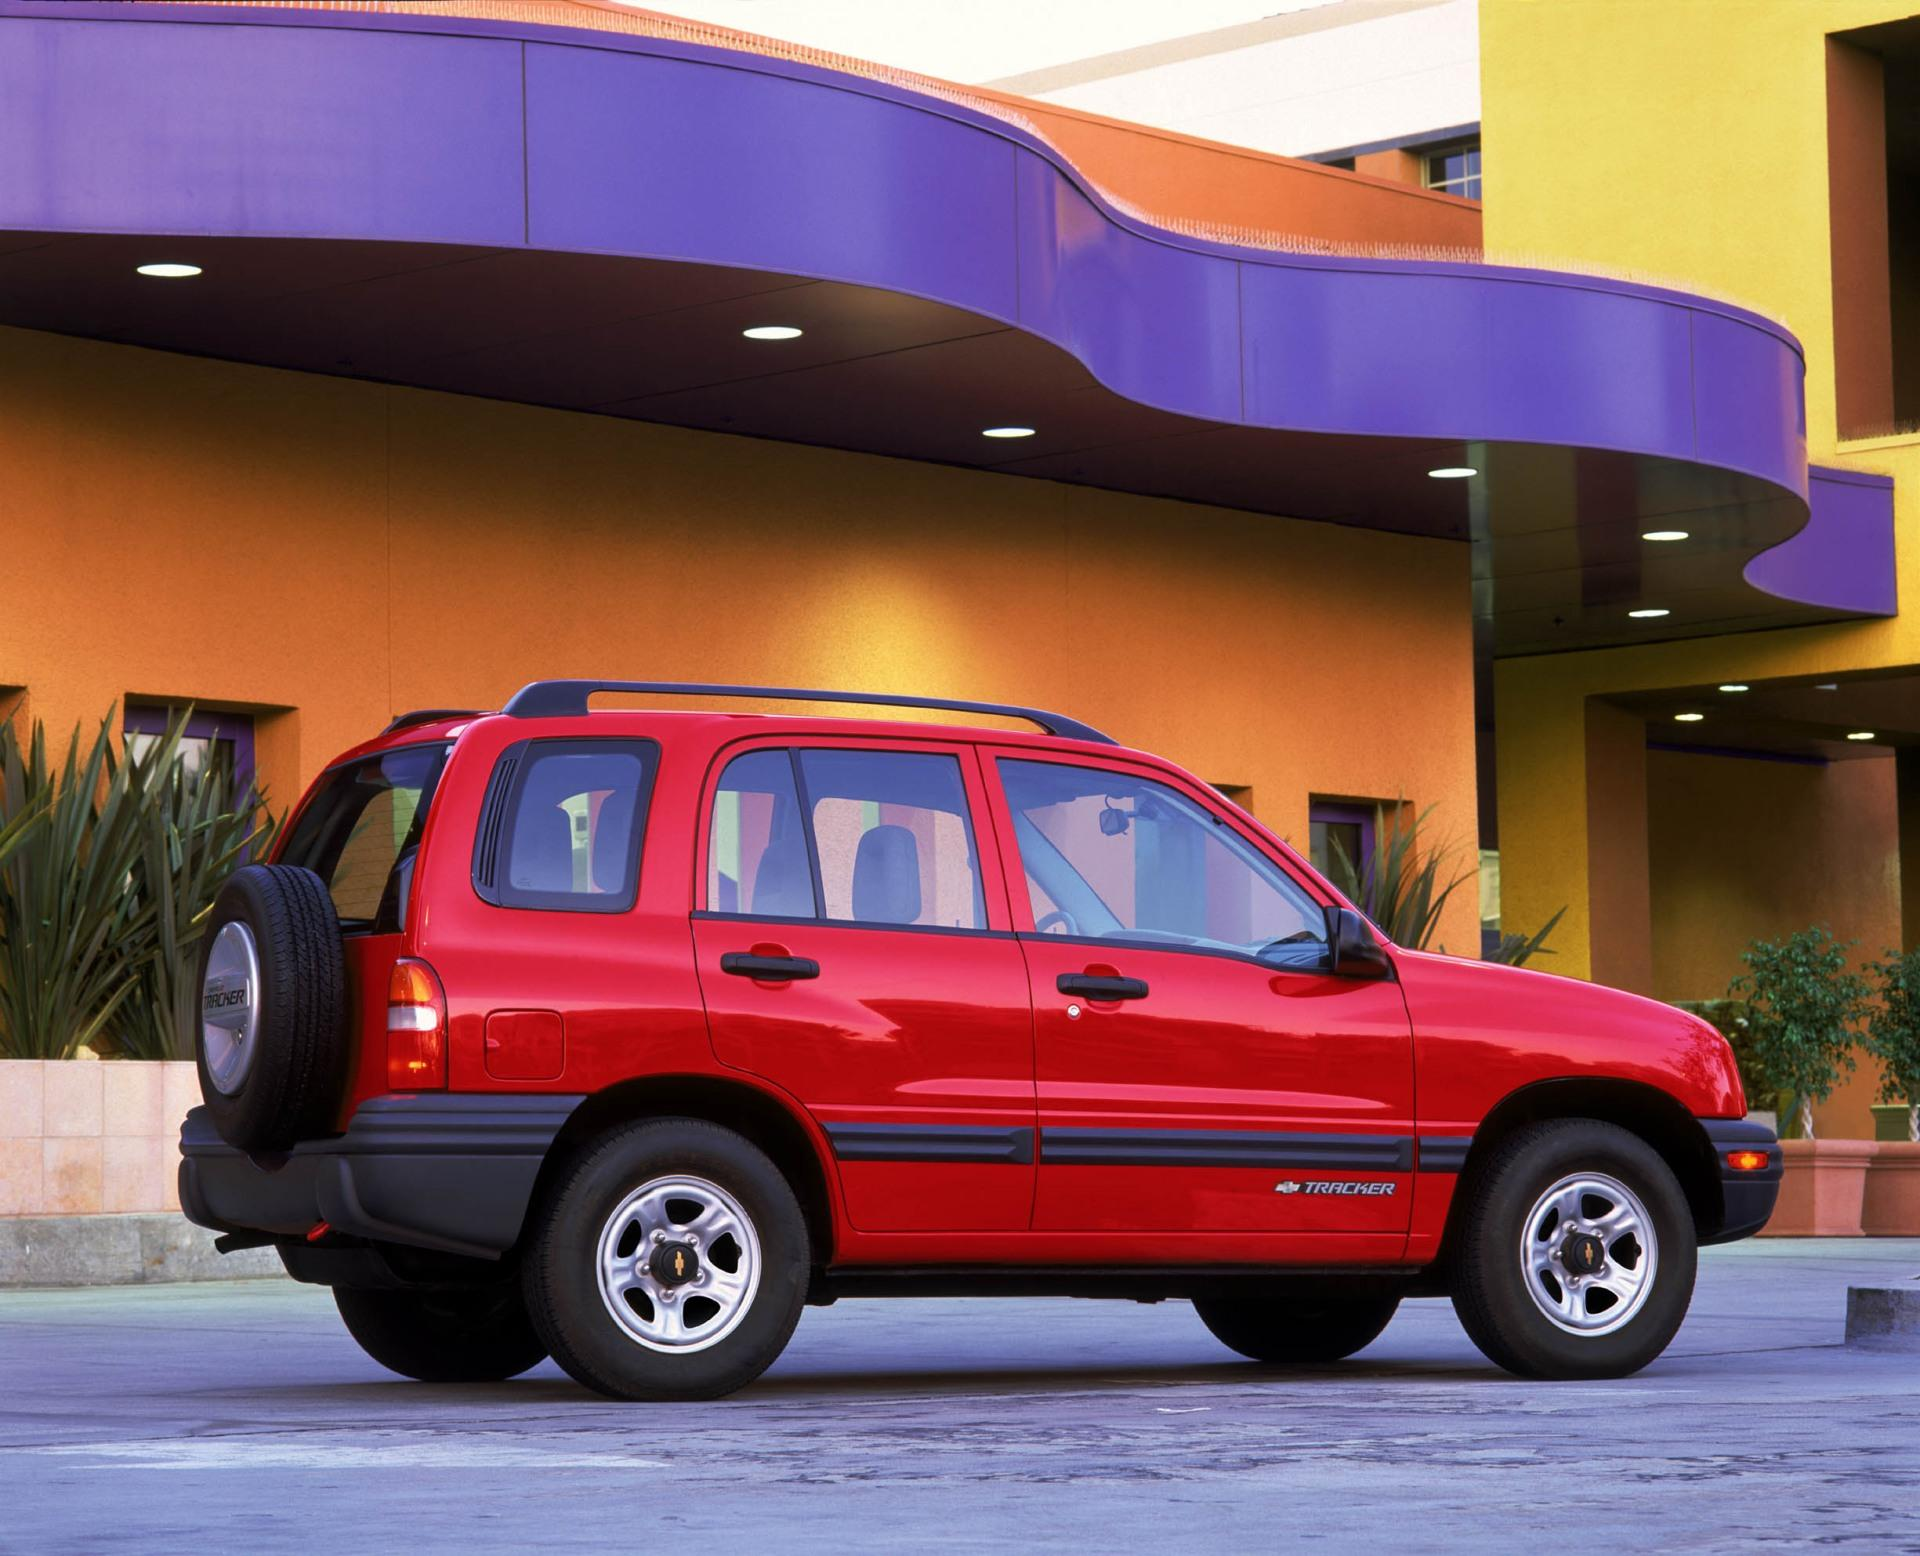 Chevy Muscle Cars >> 2002 Chevrolet Tracker | conceptcarz.com